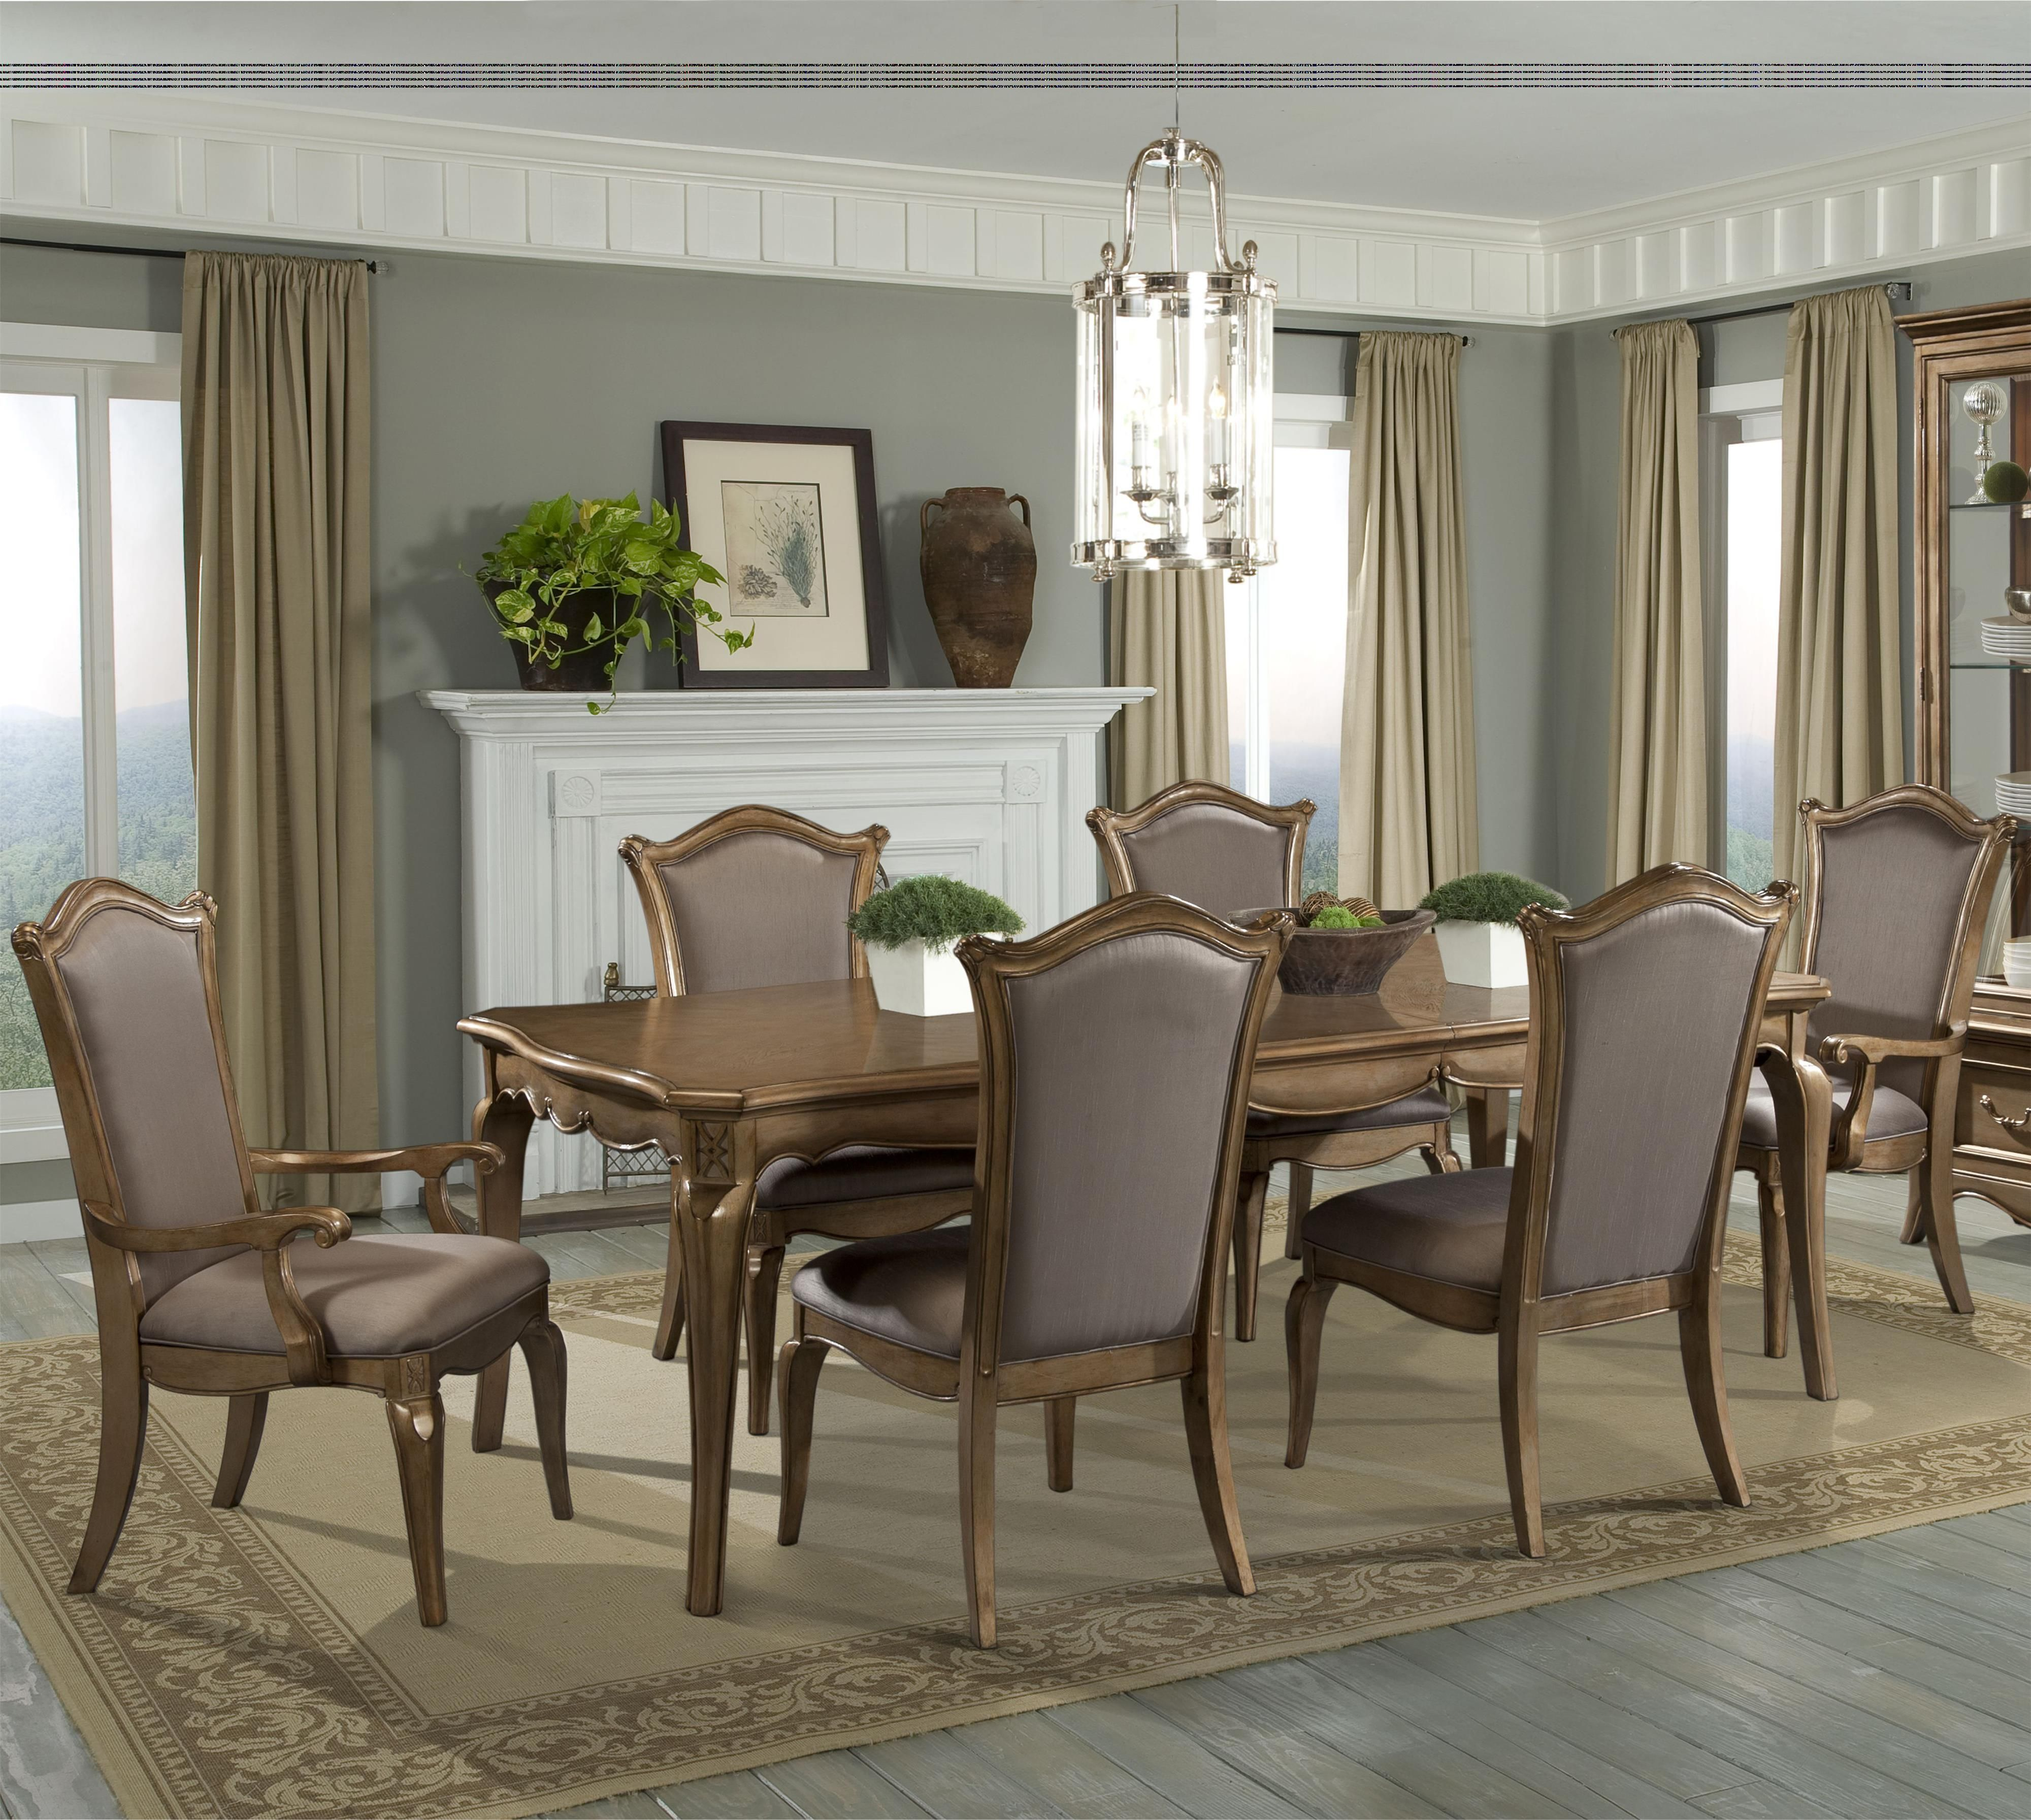 Chambord 7 Piece Dining Set With Uphosltered Chairshomelegance Best Taupe Dining Room Chairs Design Inspiration